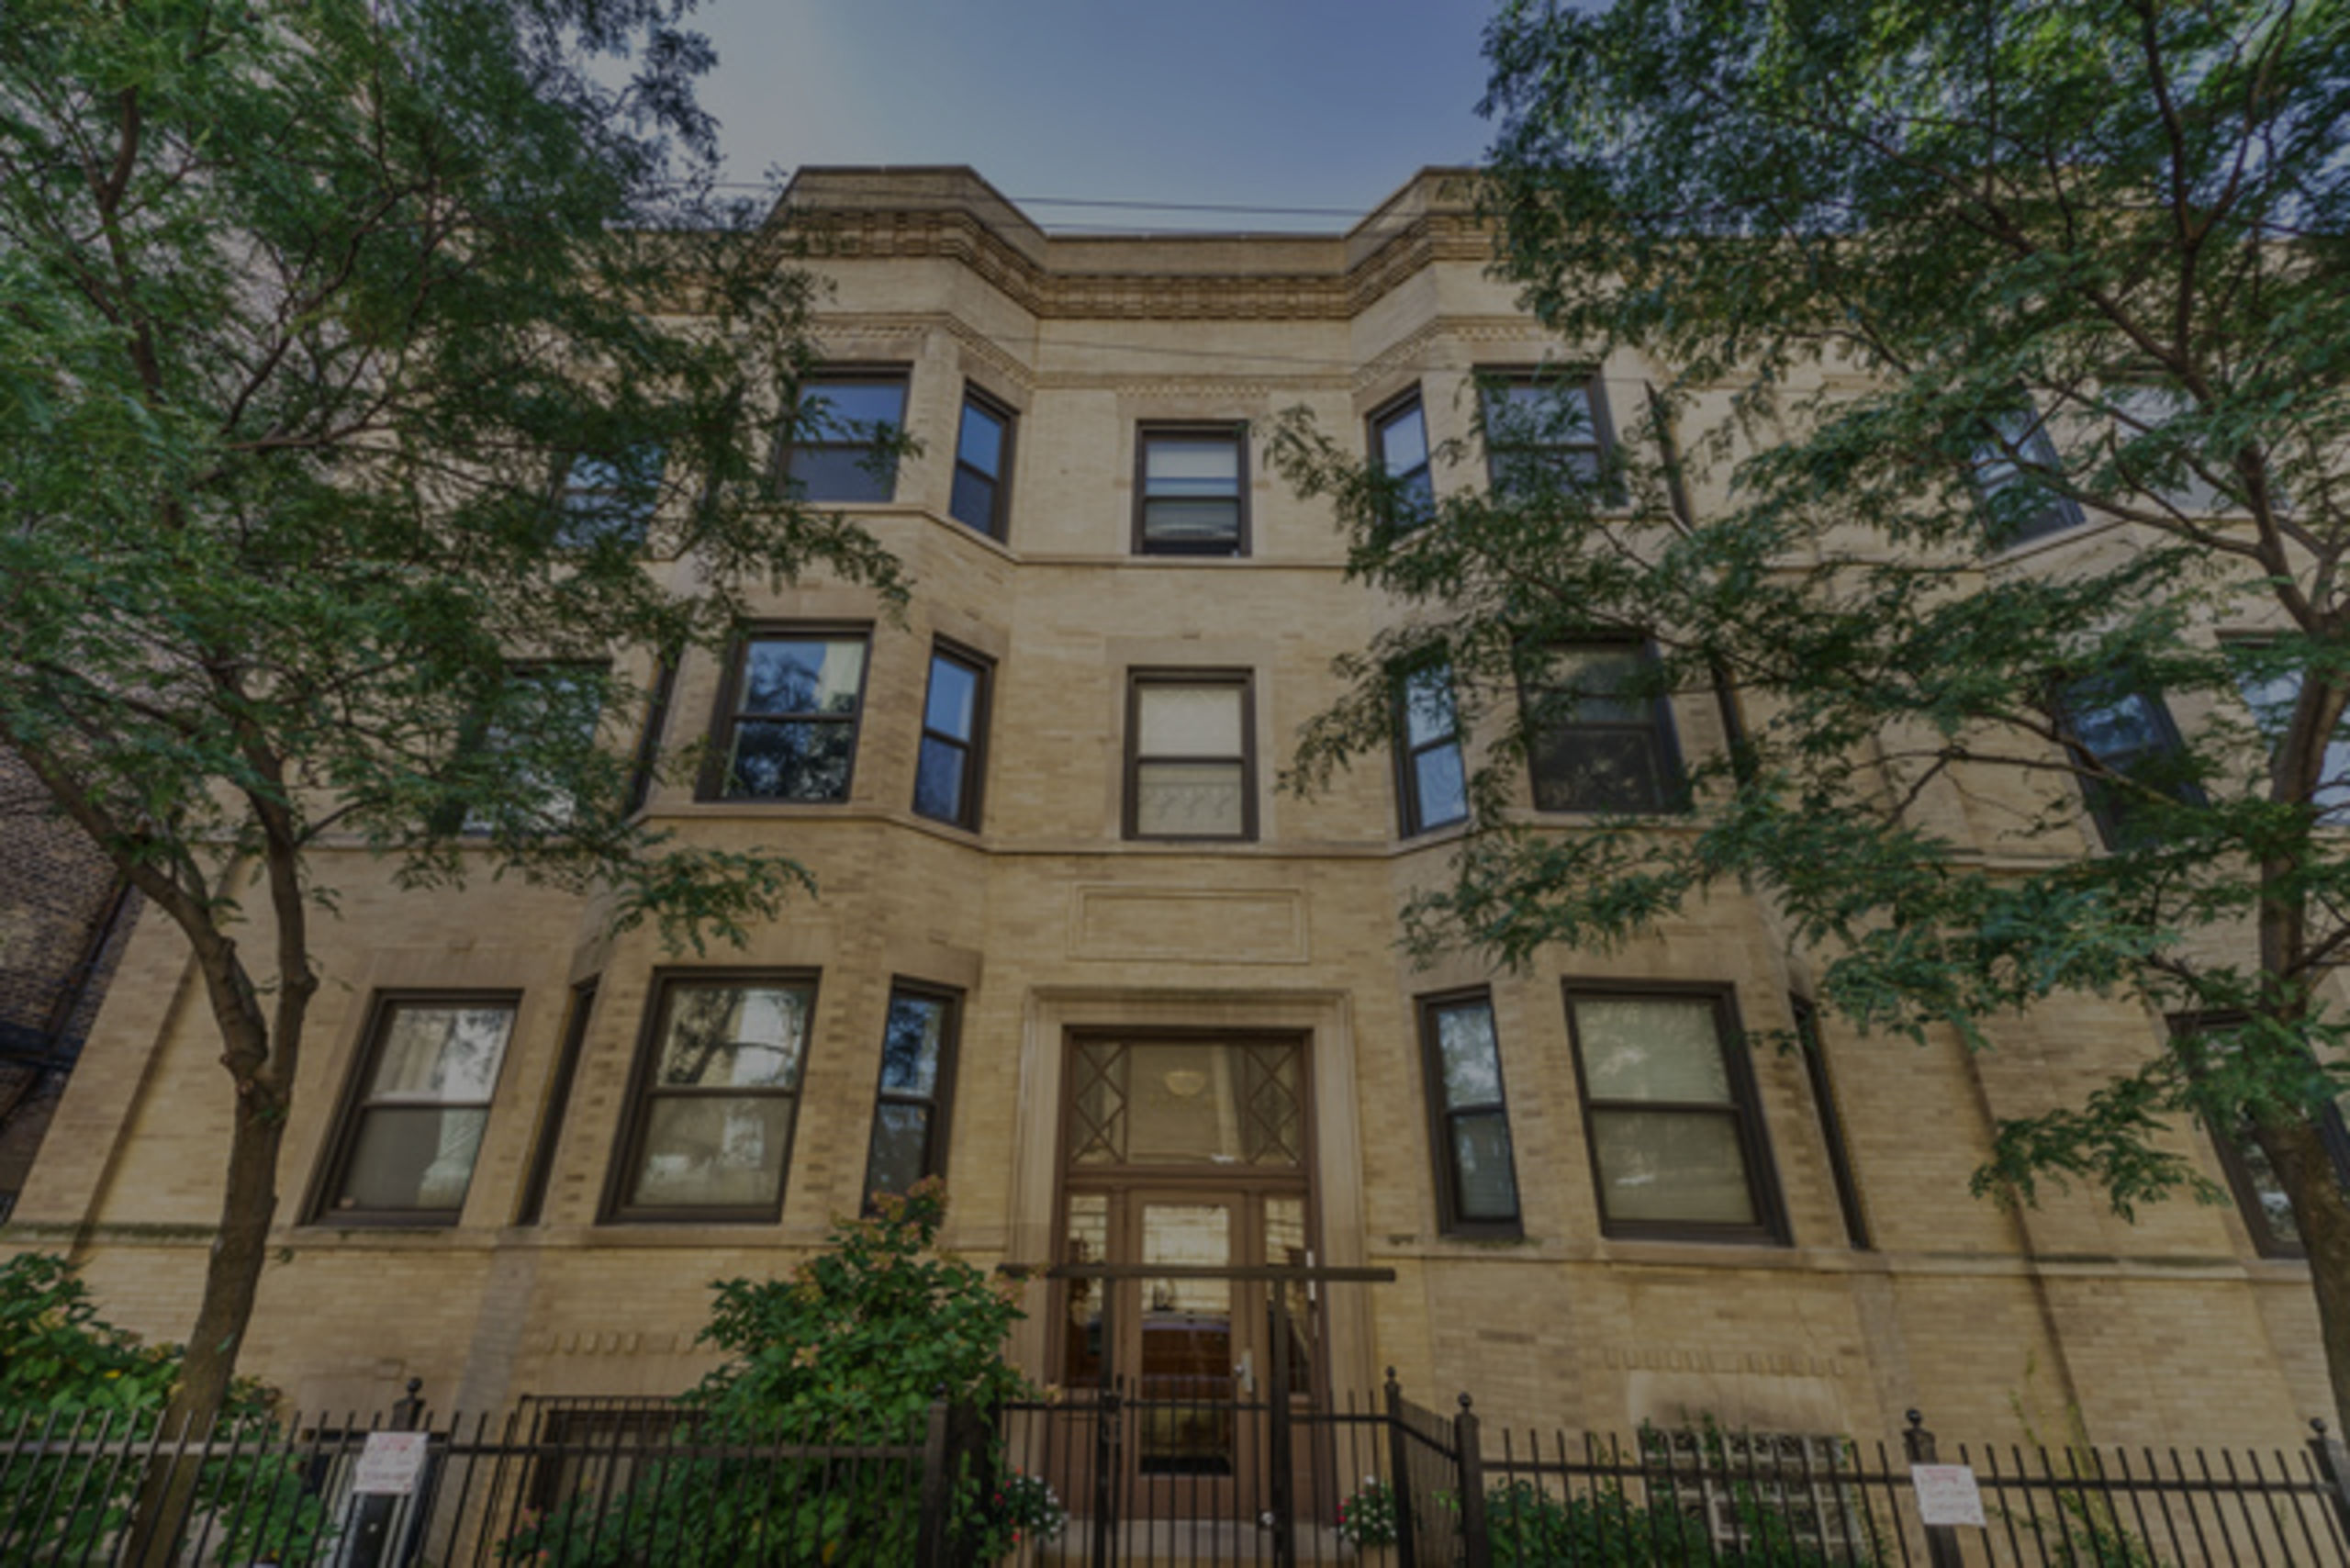 JUST SOLD: 1217 W LAWRENCE AVE UNIT 3, CHICAGO, IL 60640